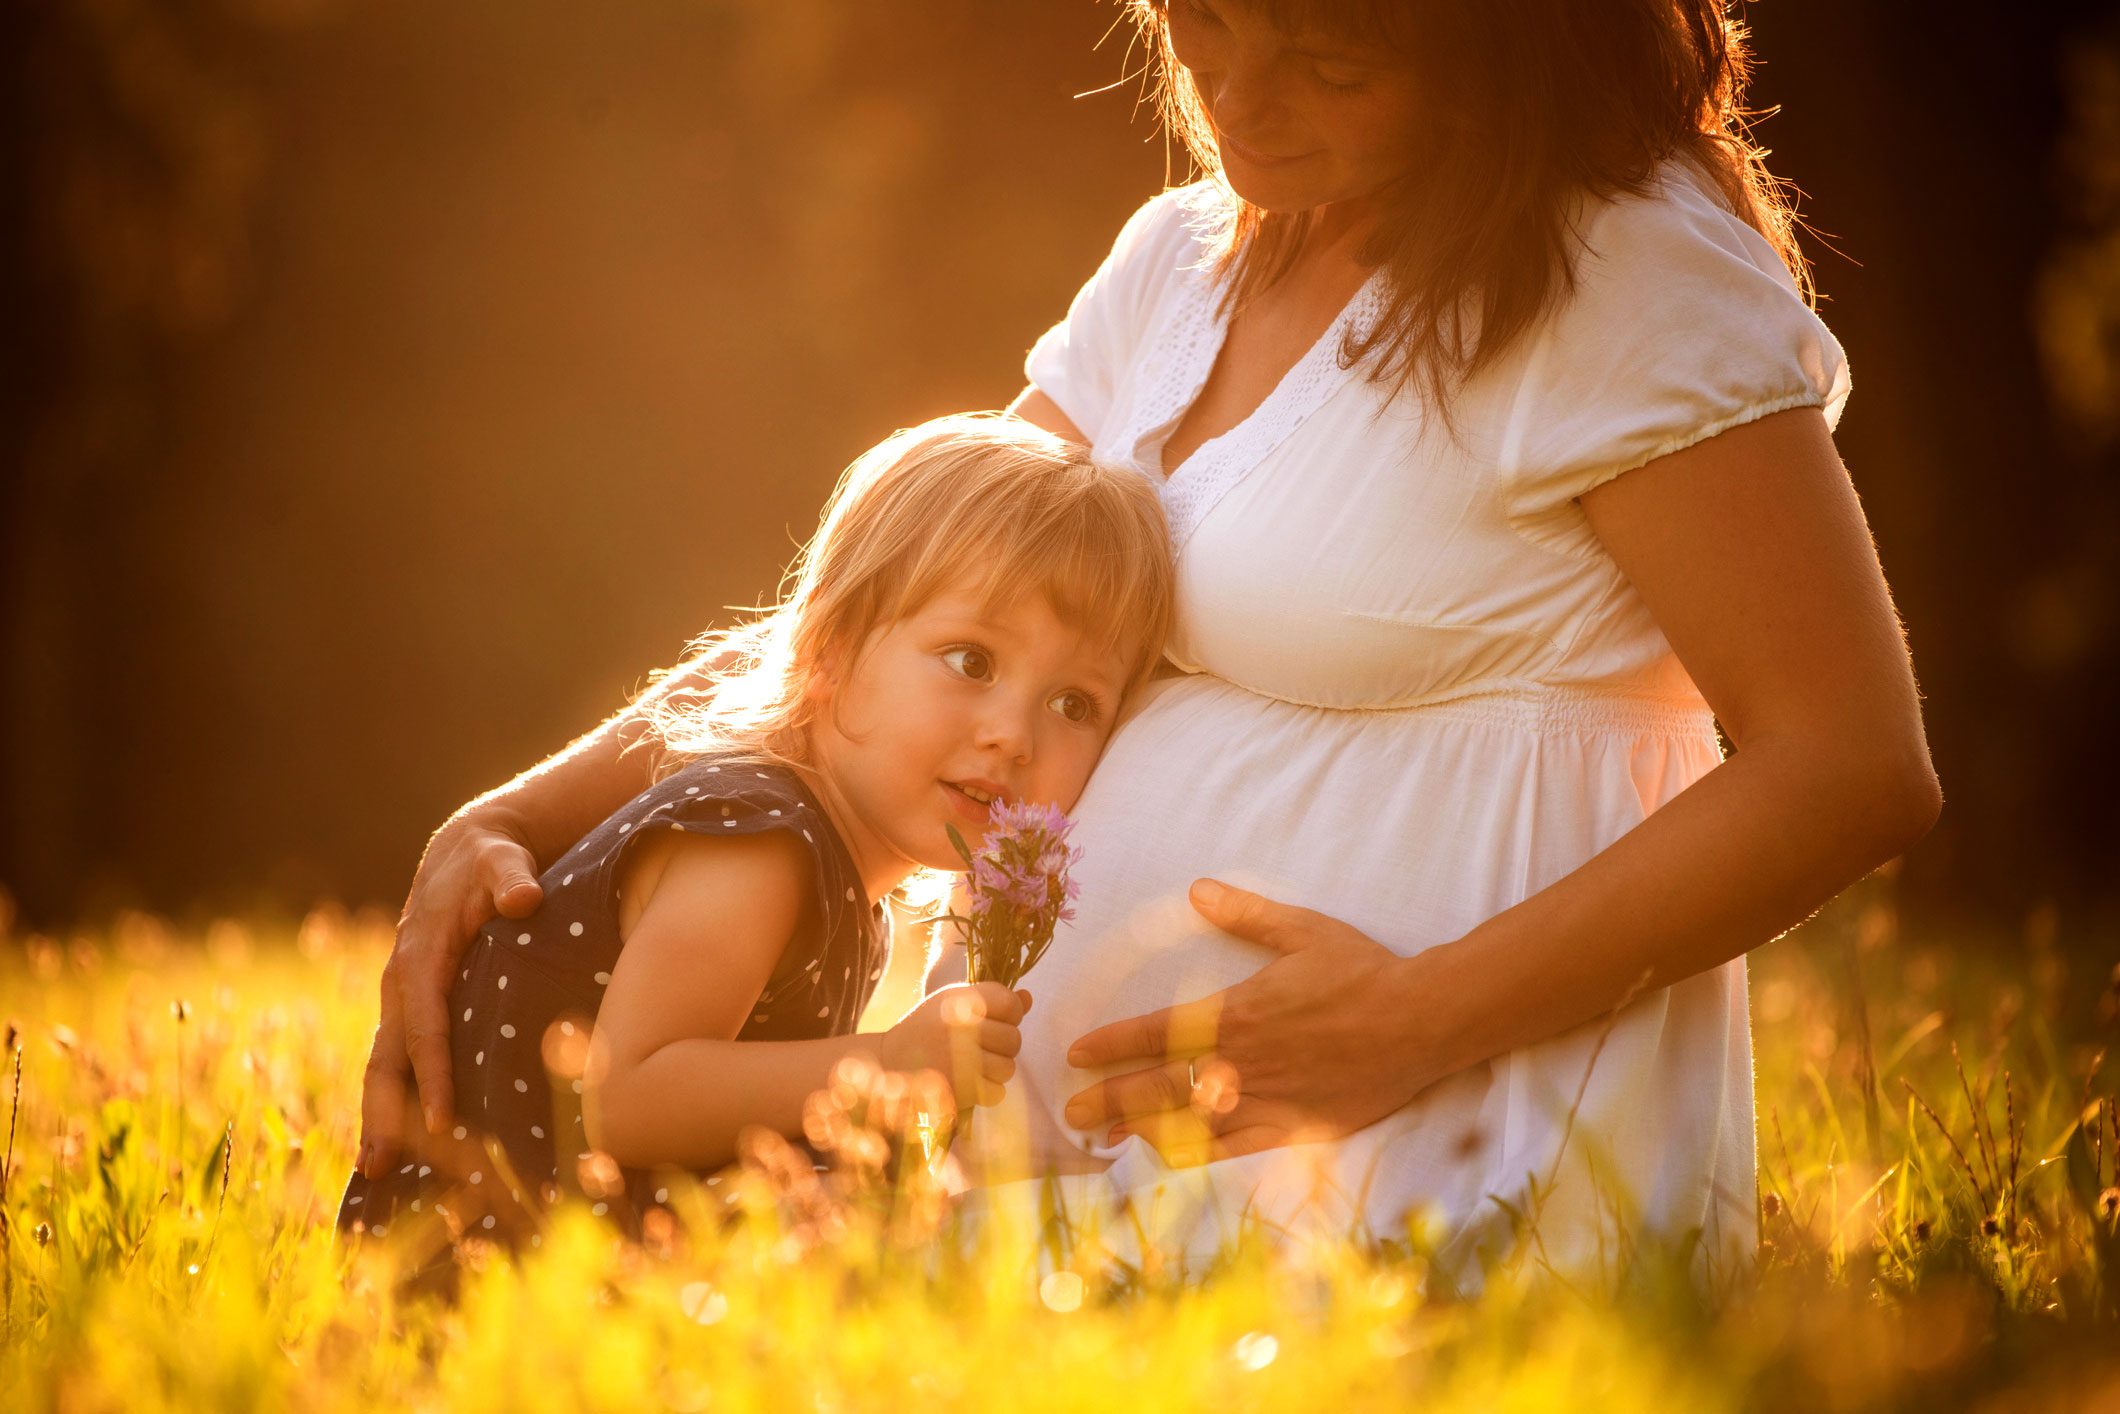 is it easier to conceive the second baby than the first?